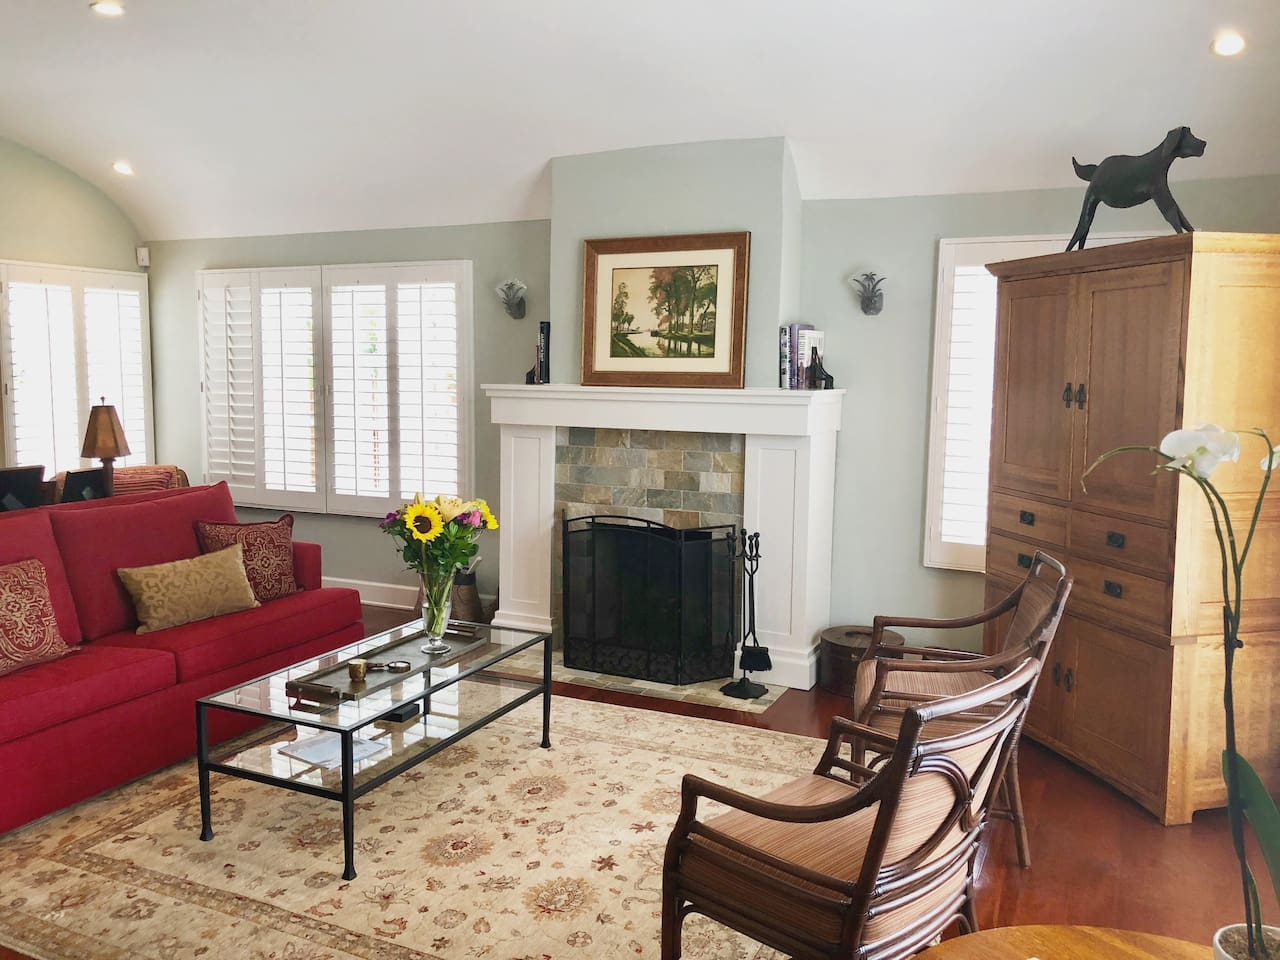 Welcome!  Our home, in one of San Diego's most historic and conveniently situated neighborhood's, is the perfect place for you to settle in and explore all that America's Finest City has to offer.  (Photo: Living room w/gas fireplace & sleeper sofa)